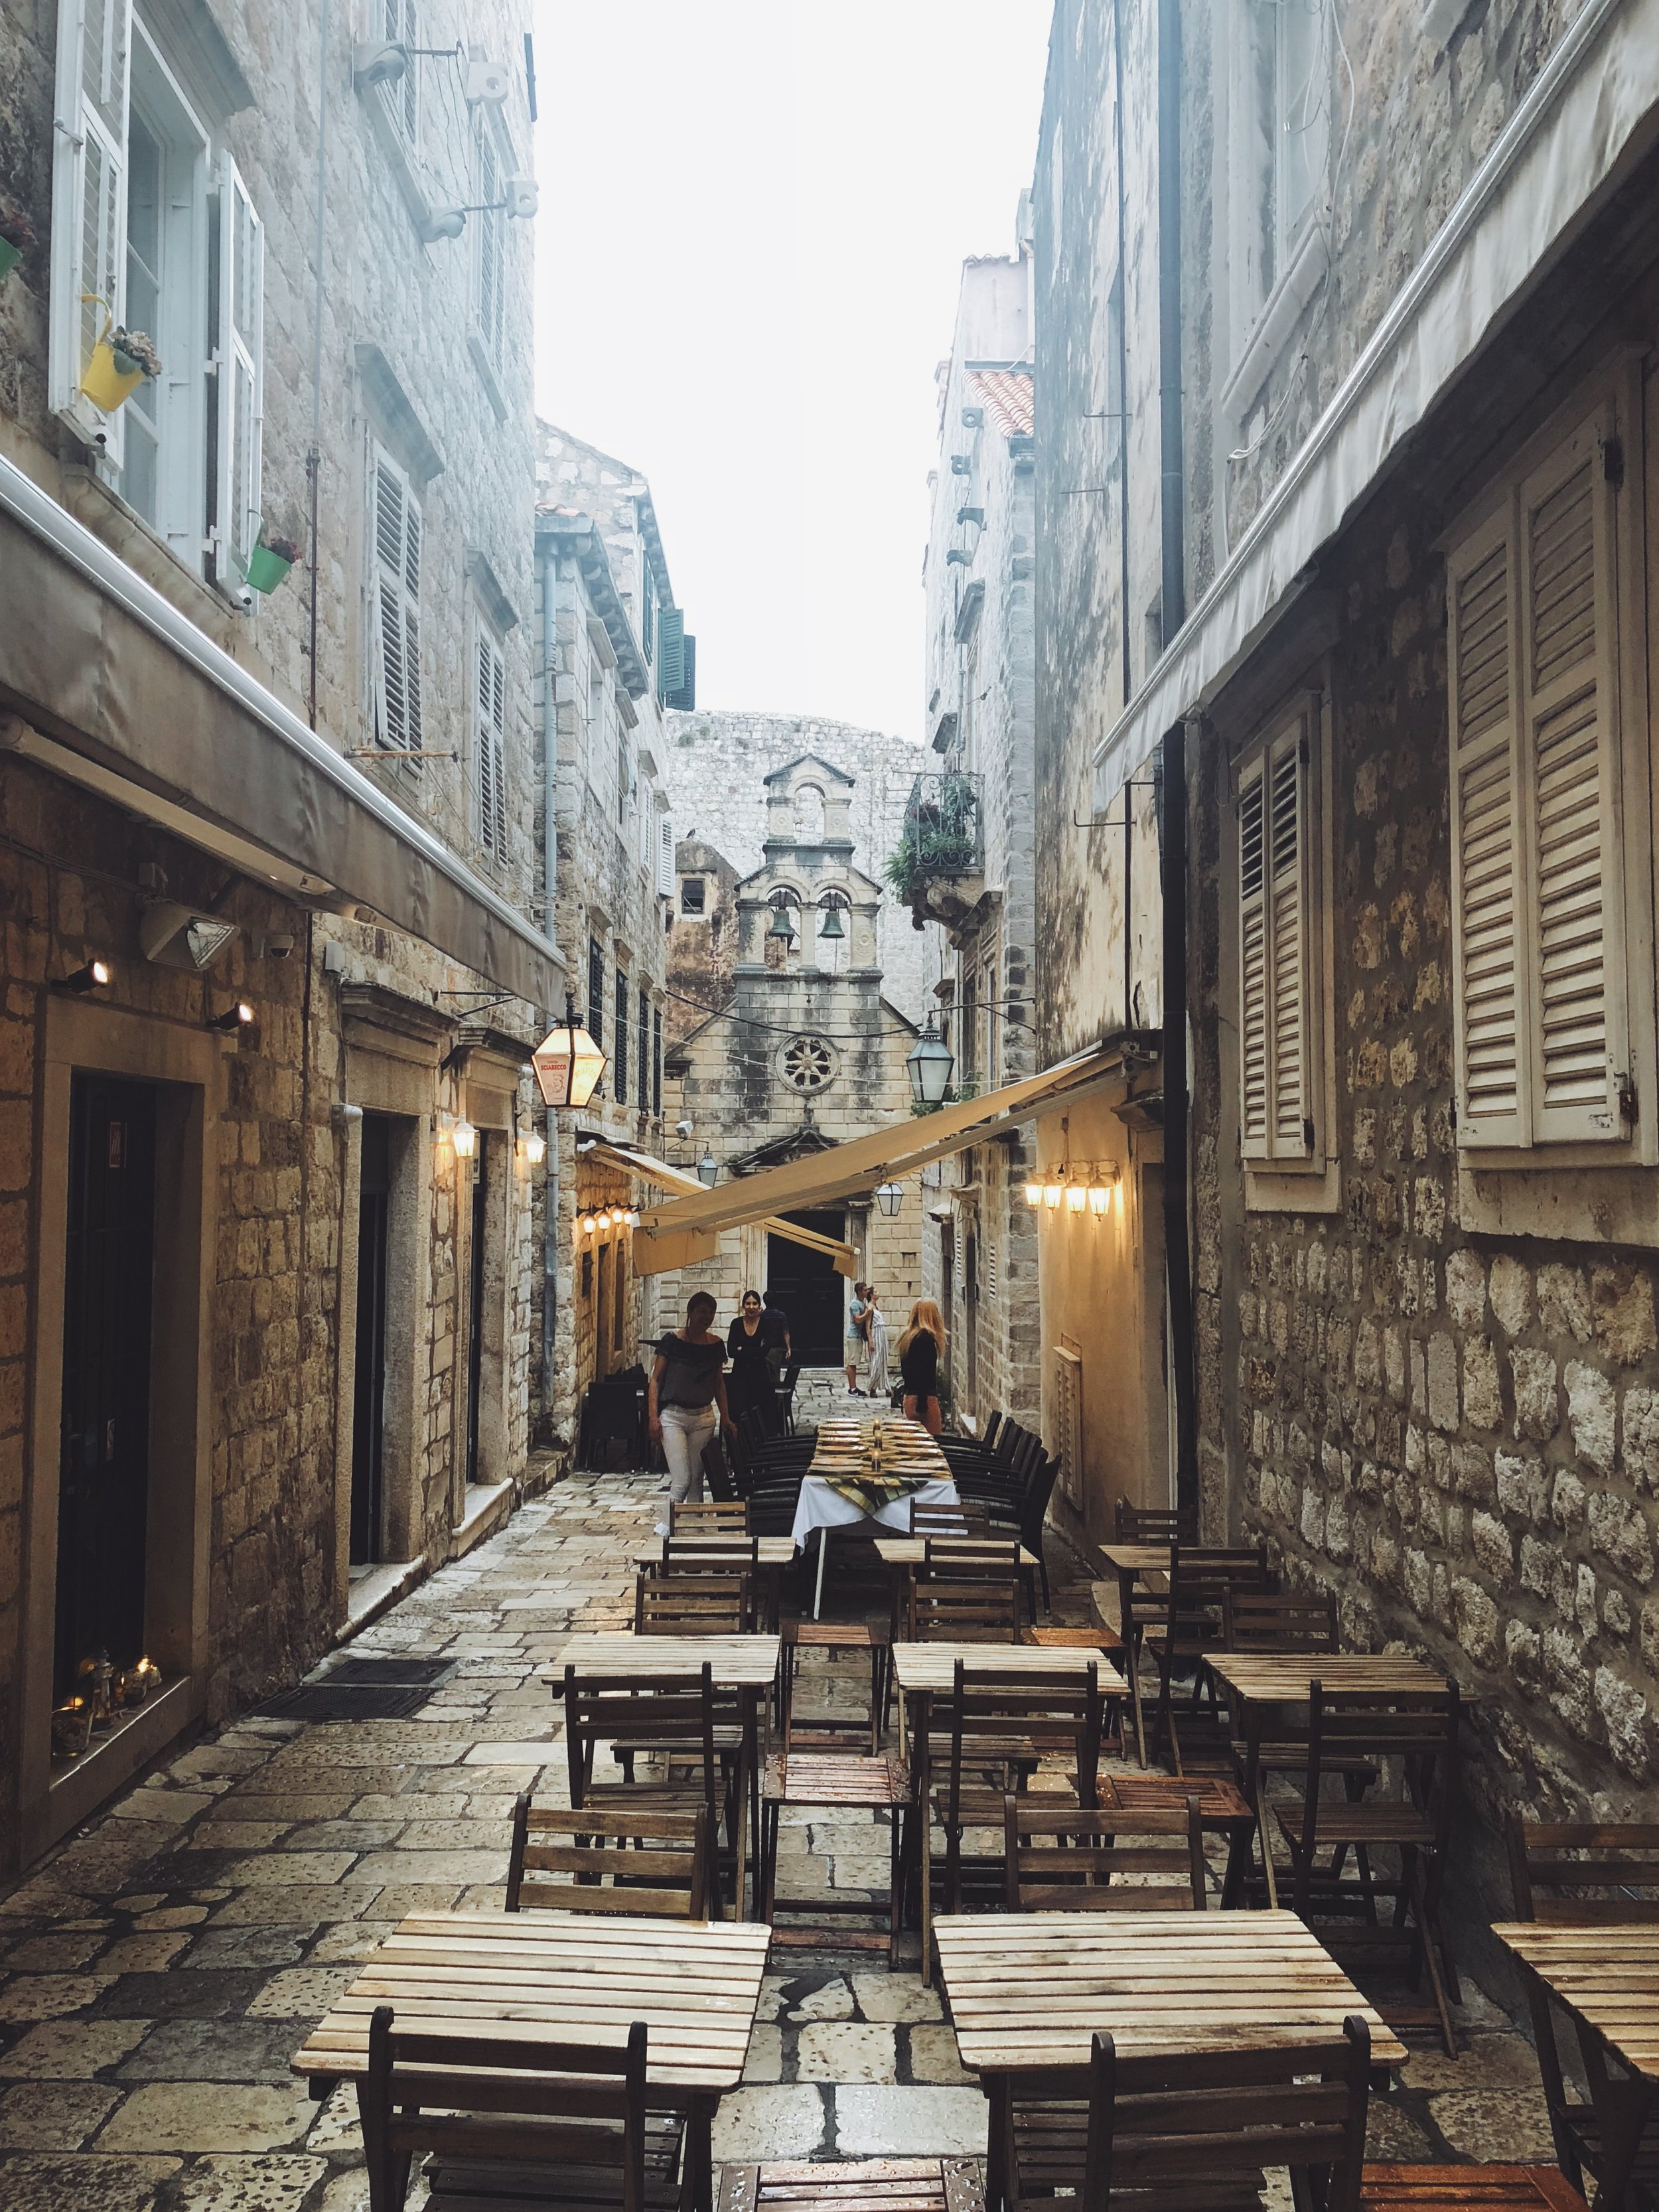 - Dubrovnik is a relatively small Croatian city on the Adriatic sea. It is known for its